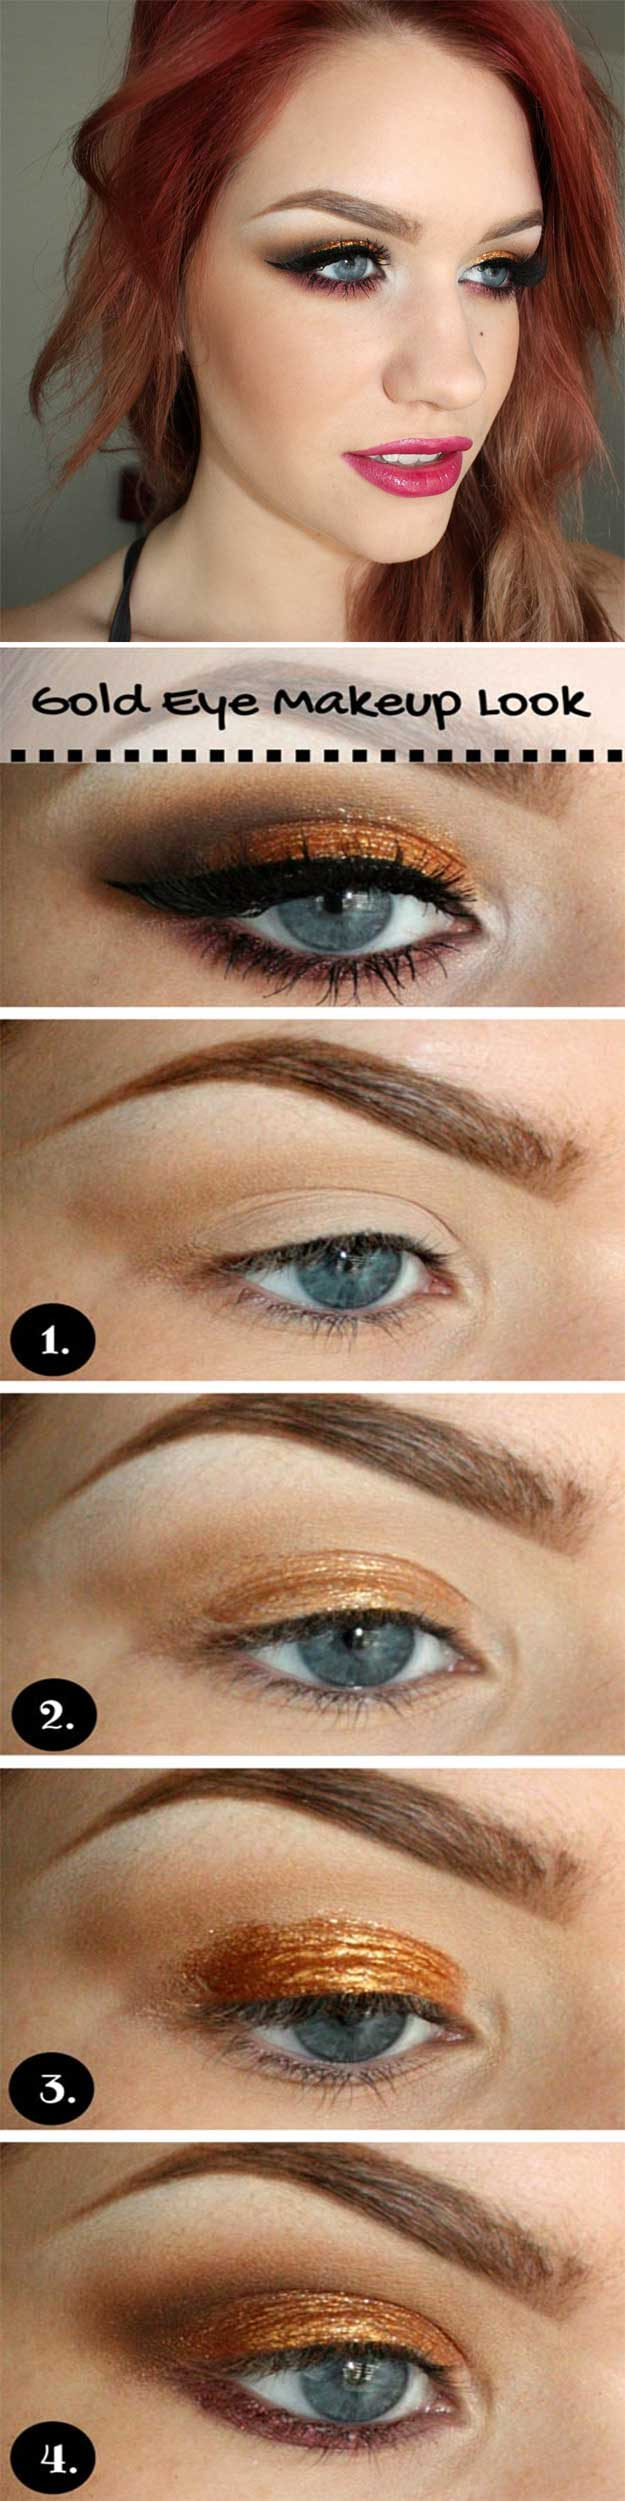 wedding makeup looks for blue eyes and red hair | saubhaya